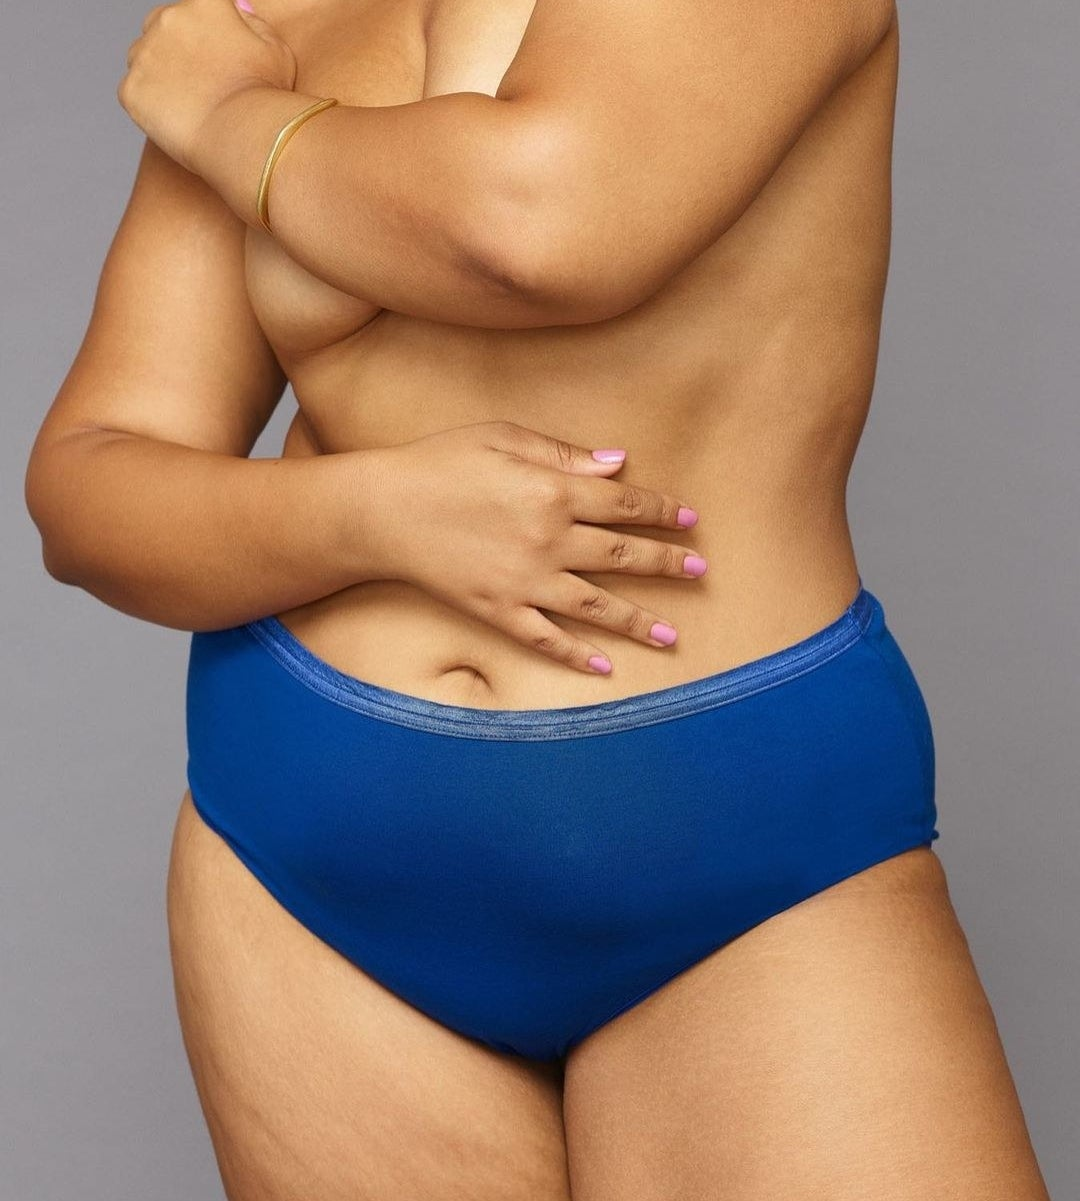 a model wearing a pair of royal blue mid-rise full coverage underwear